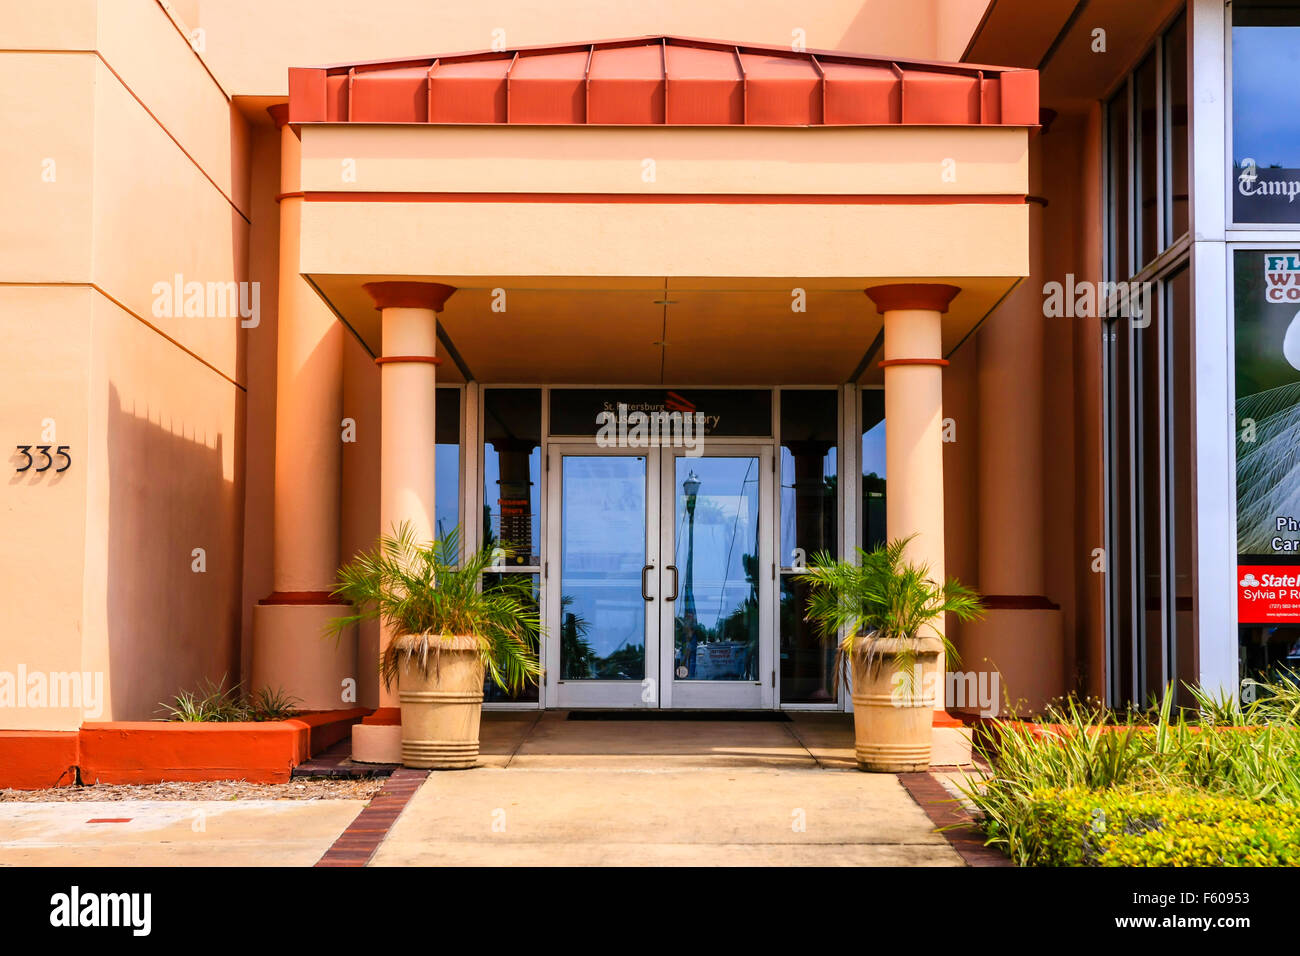 Entrance to the St. Petersburg Museum of History on 2nd Ave in this Florida city Stock Photo